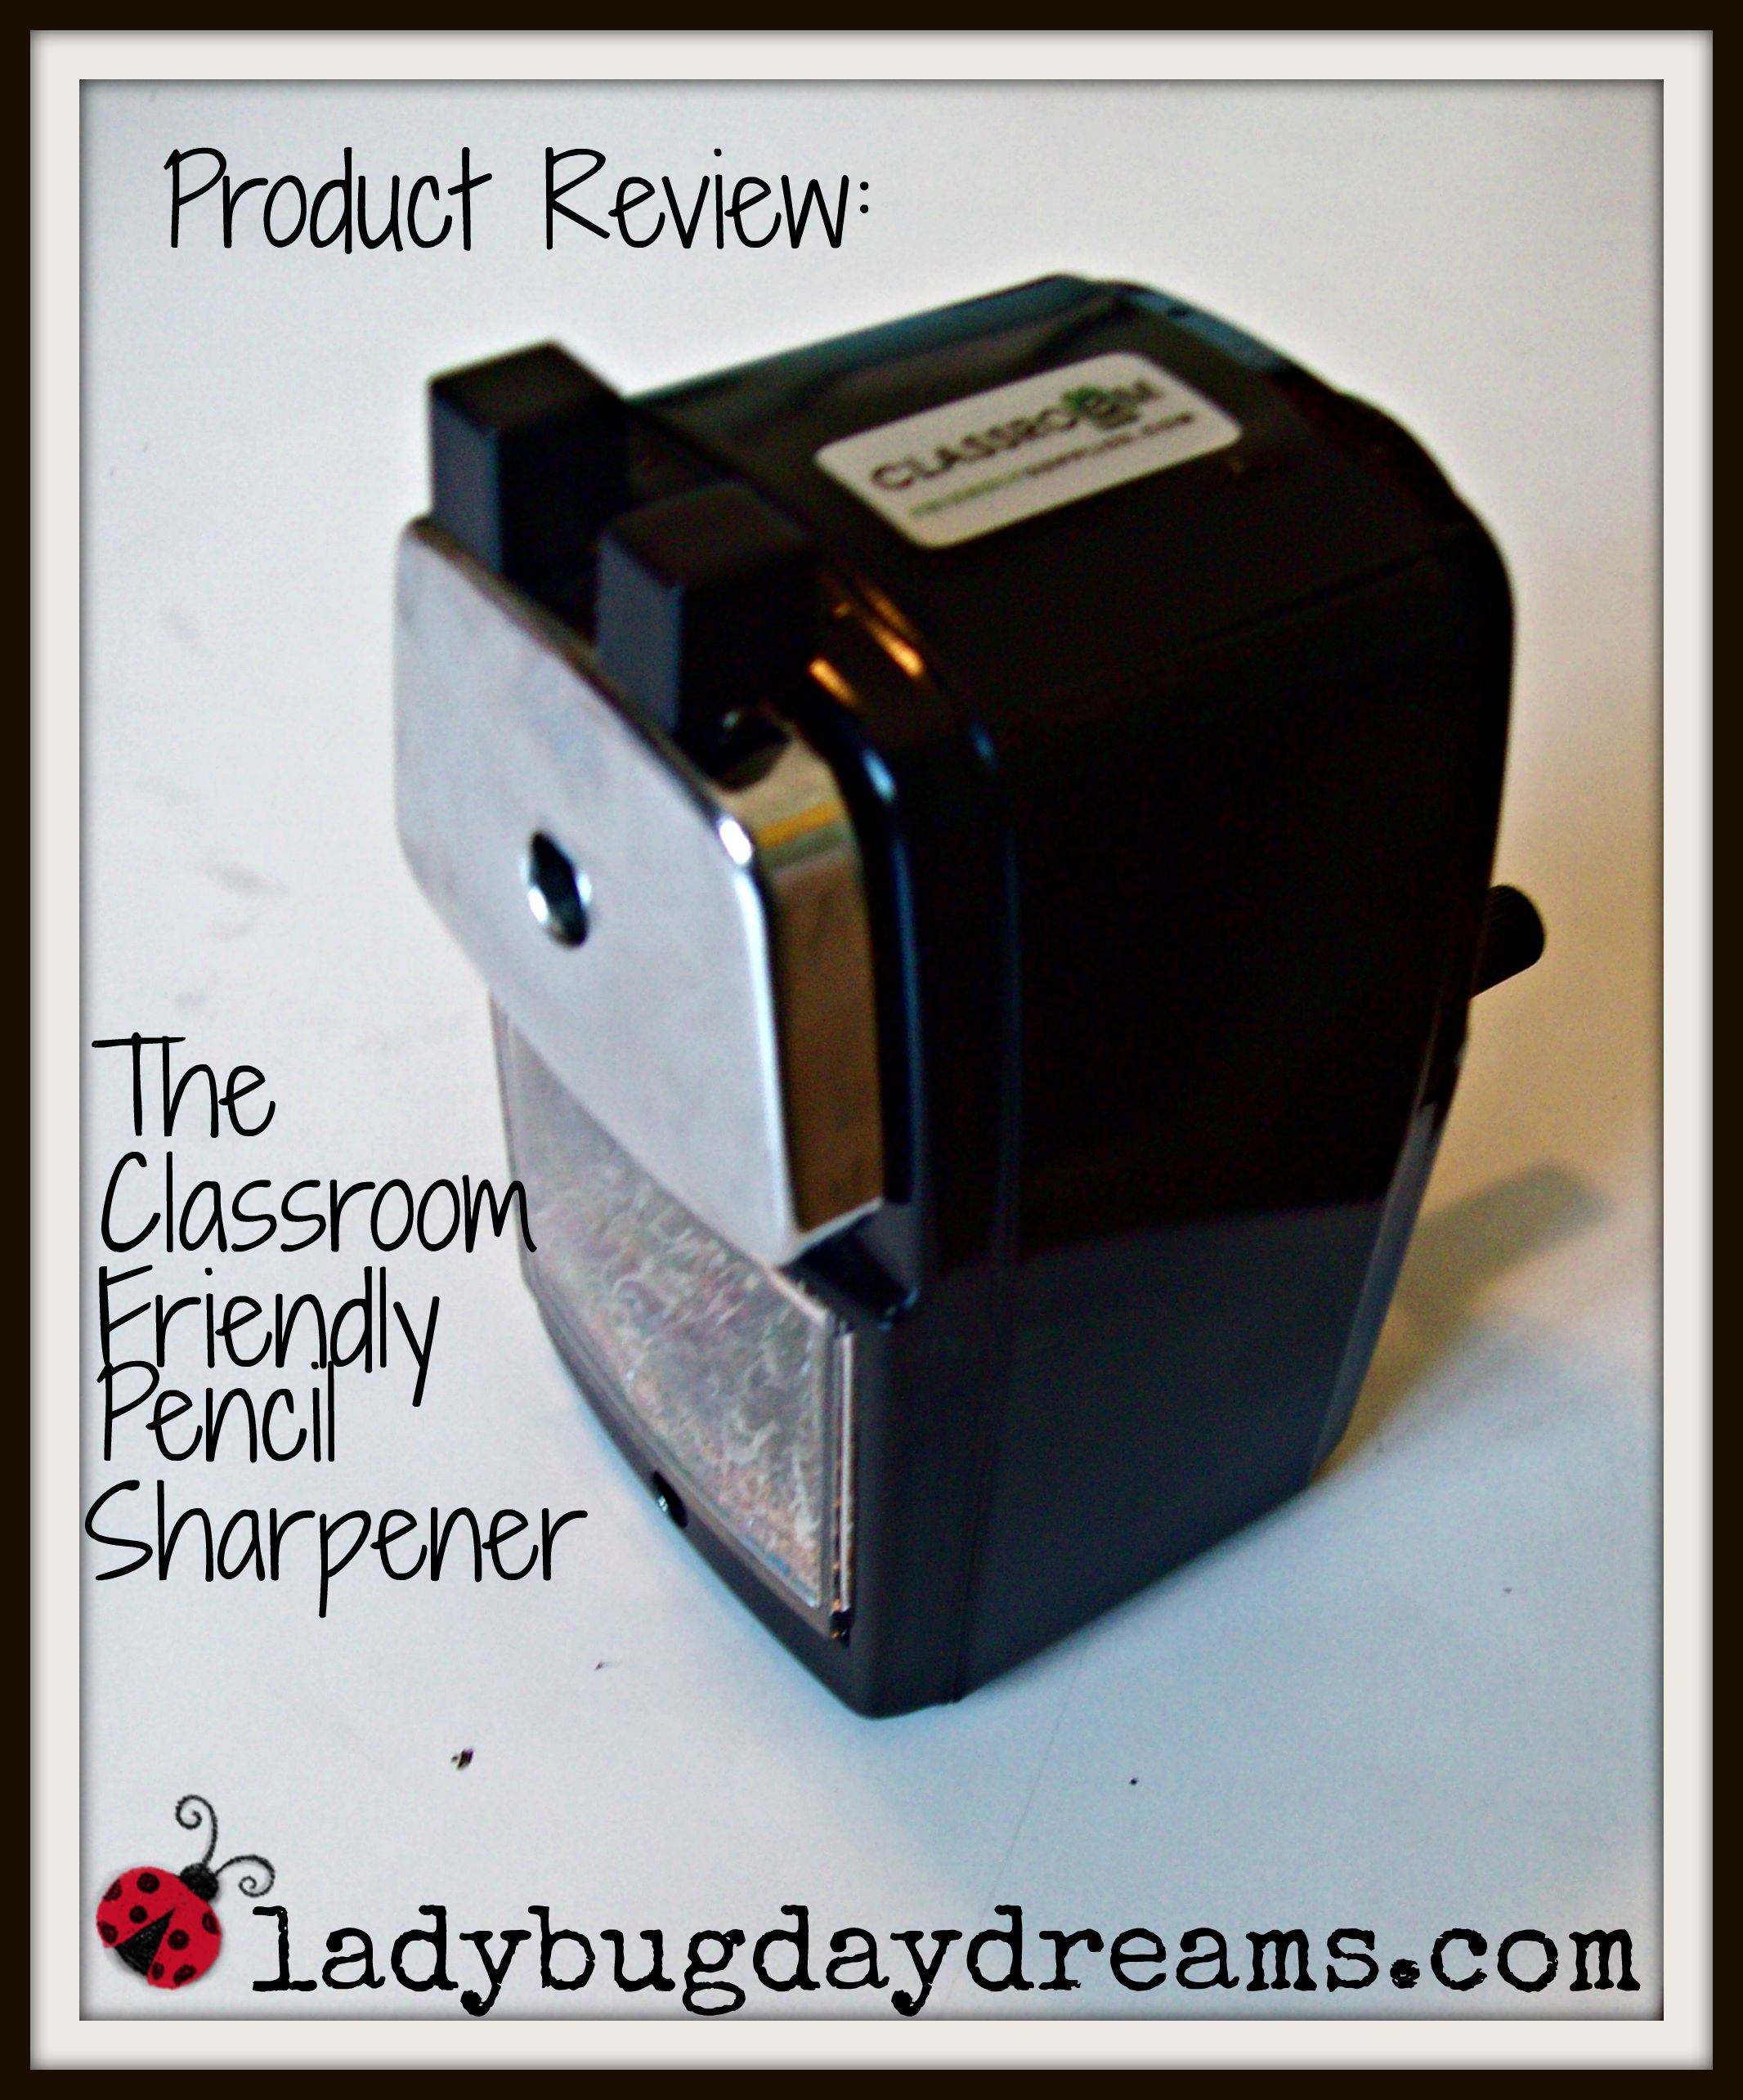 Product Review The Classroom Friendly Pencil Sharpener